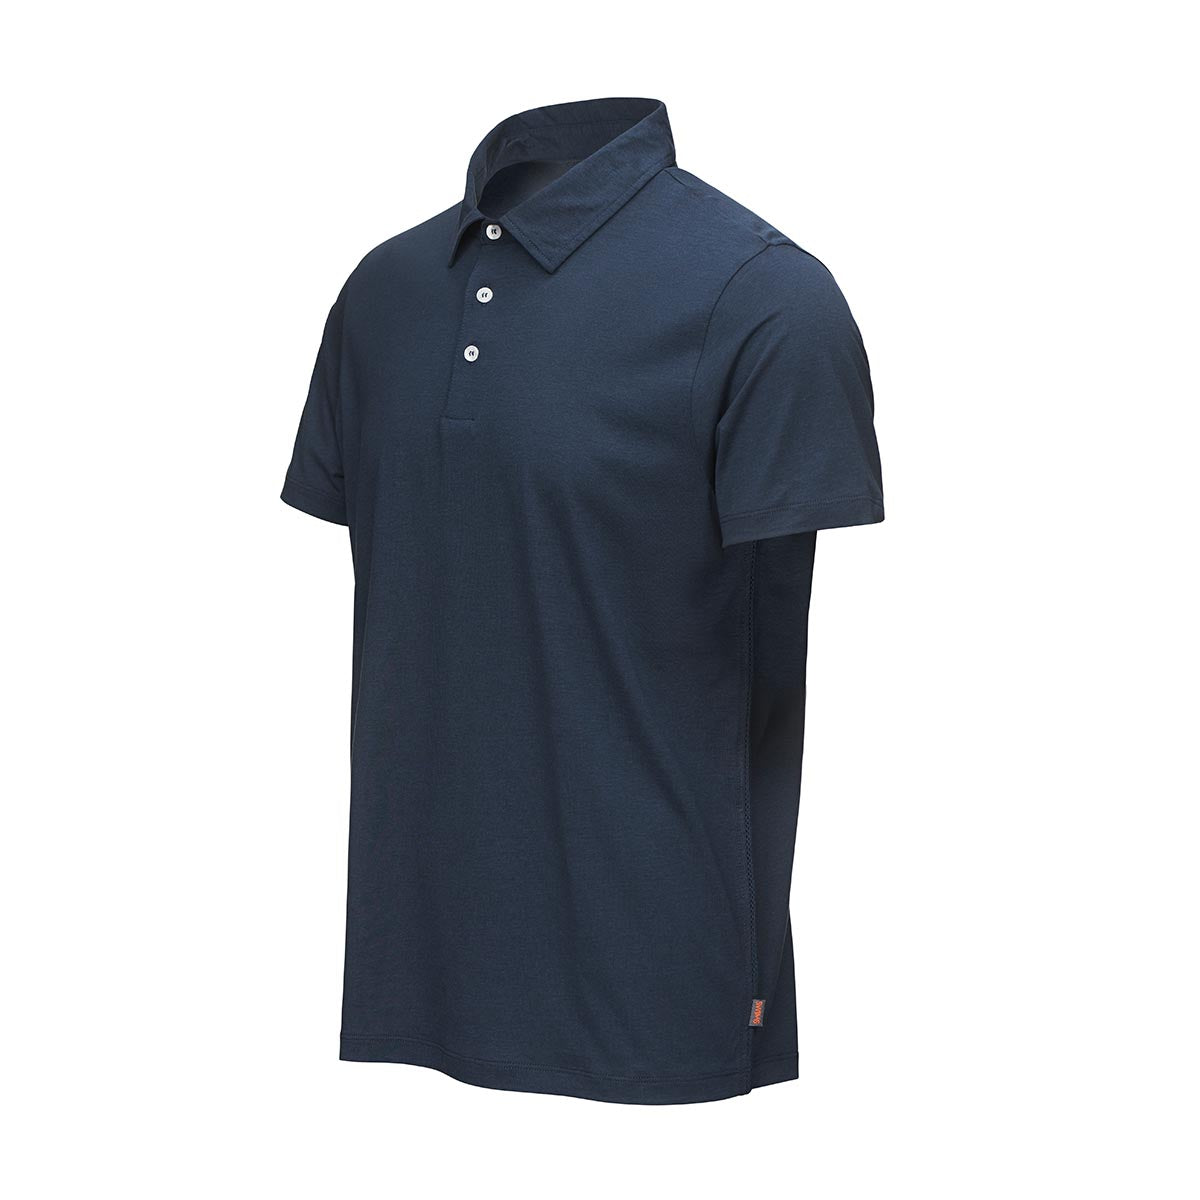 Breeze Hoddevik Polo T-Shirt - background::white,variant::Navy